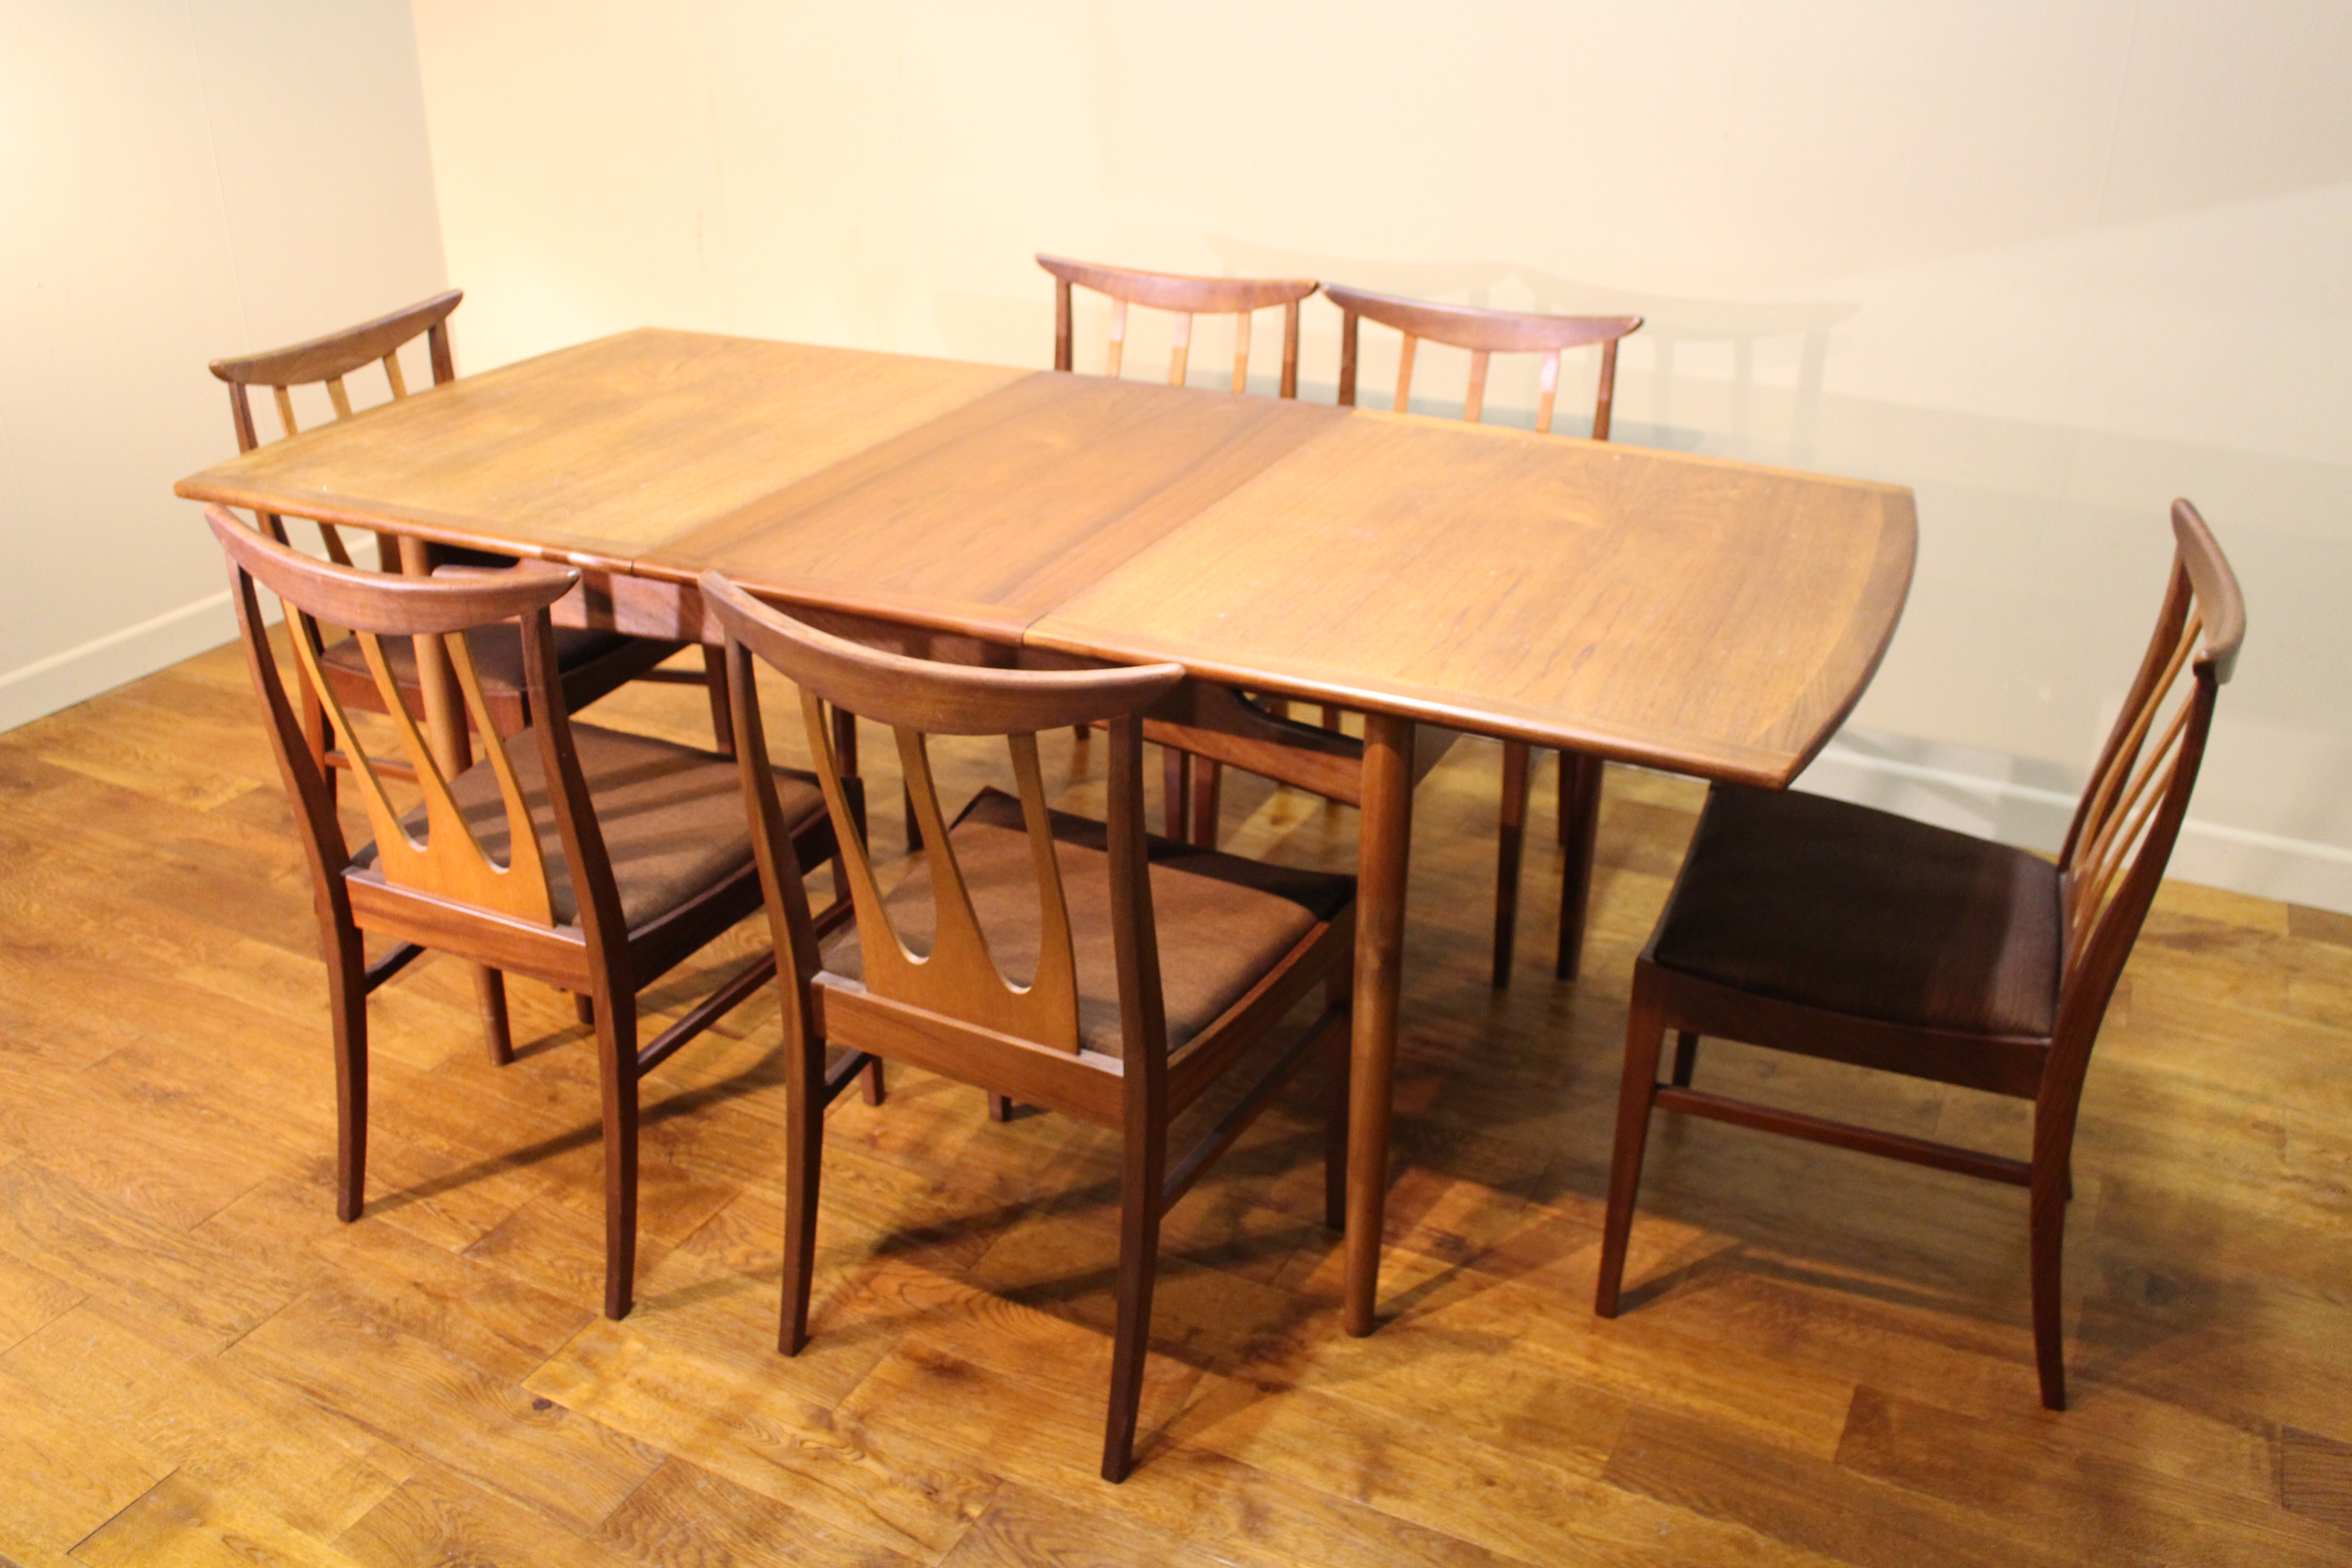 Wondrous G Plan 1960S Teak Brasilia Dining Table And 6 Chairs Squirreltailoven Fun Painted Chair Ideas Images Squirreltailovenorg